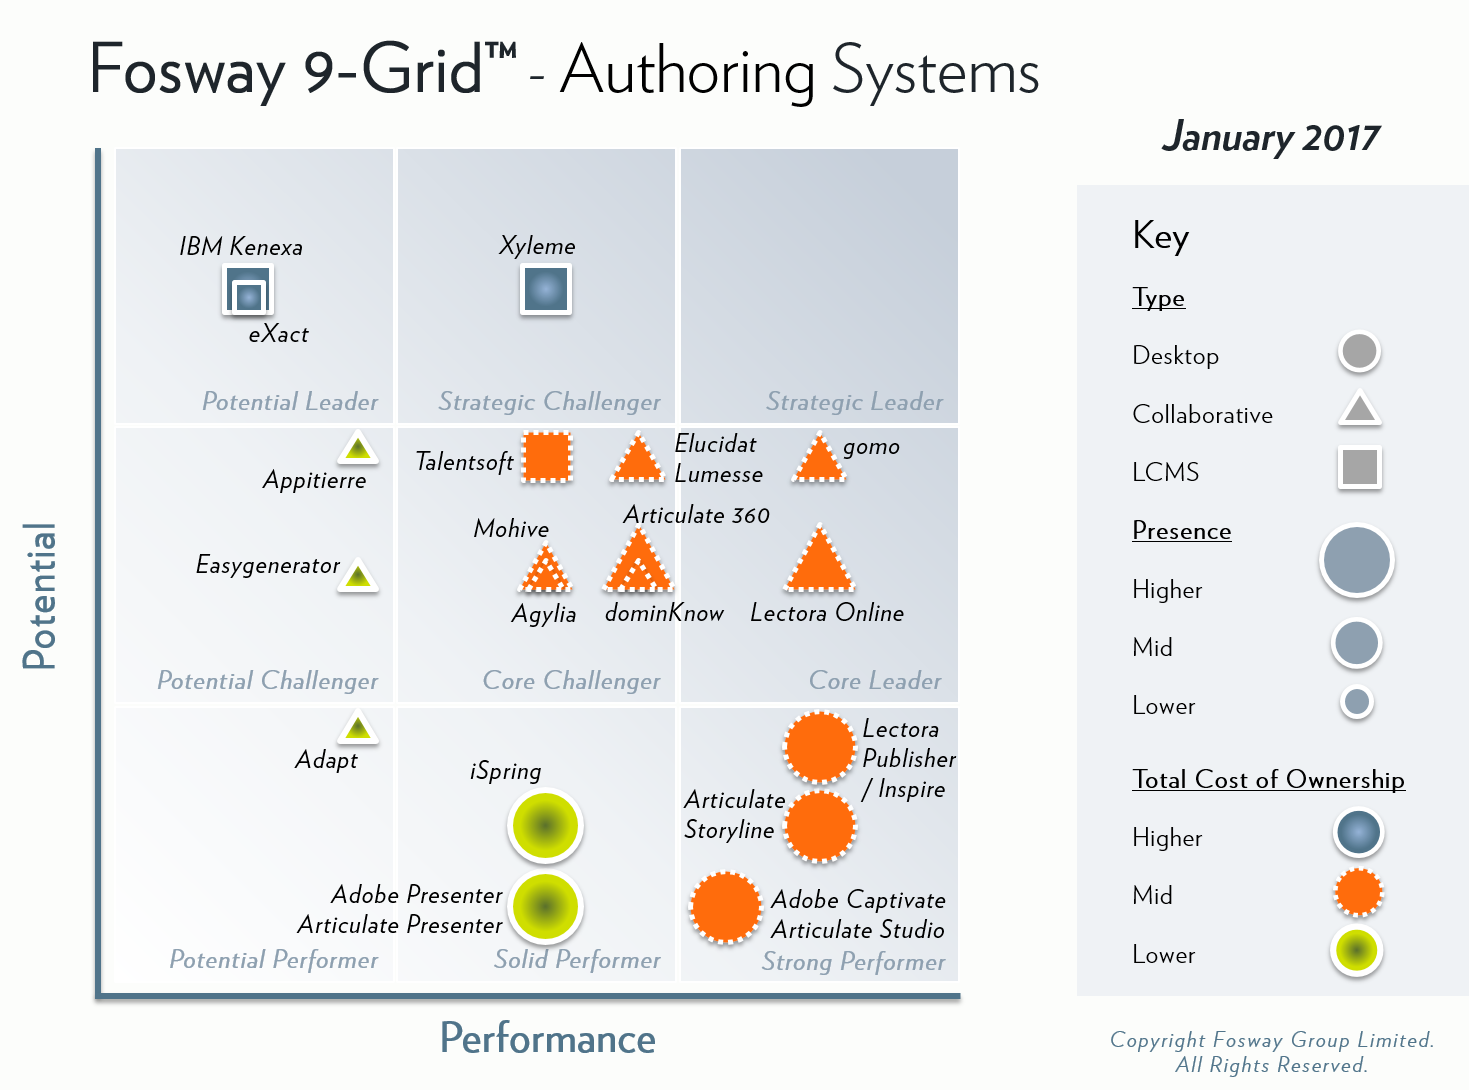 Fosway 9-Grid - Authoring Systems 2017